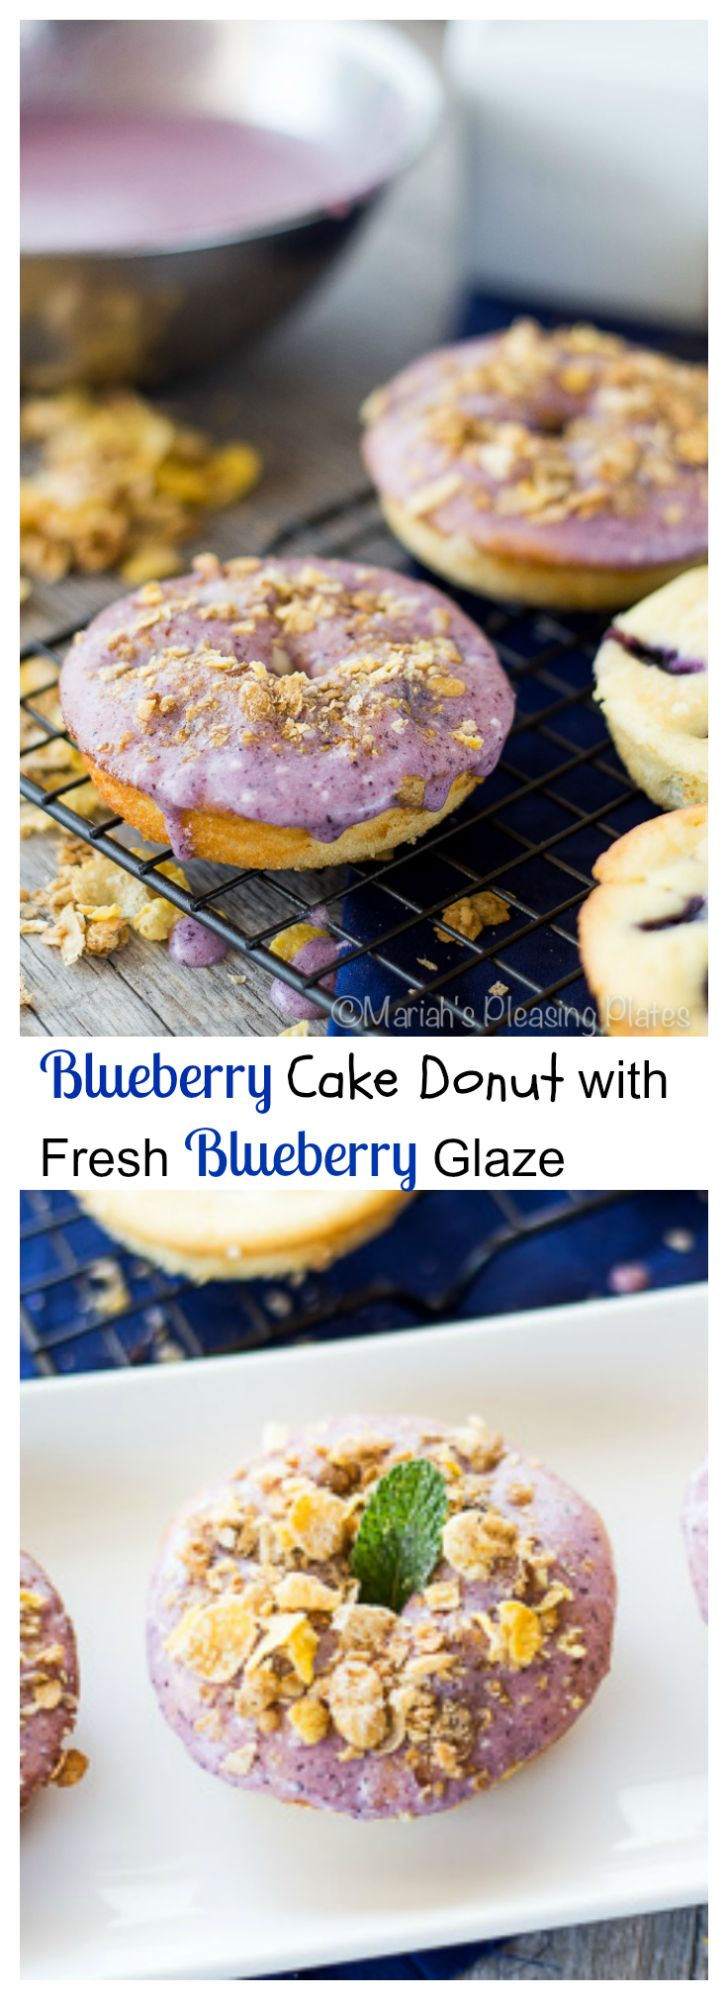 A baked blueberry donut that can compete with any donut store. This cake donut is full of fresh blueberries, a hint of lemon and a dreamy blueberry glaze.